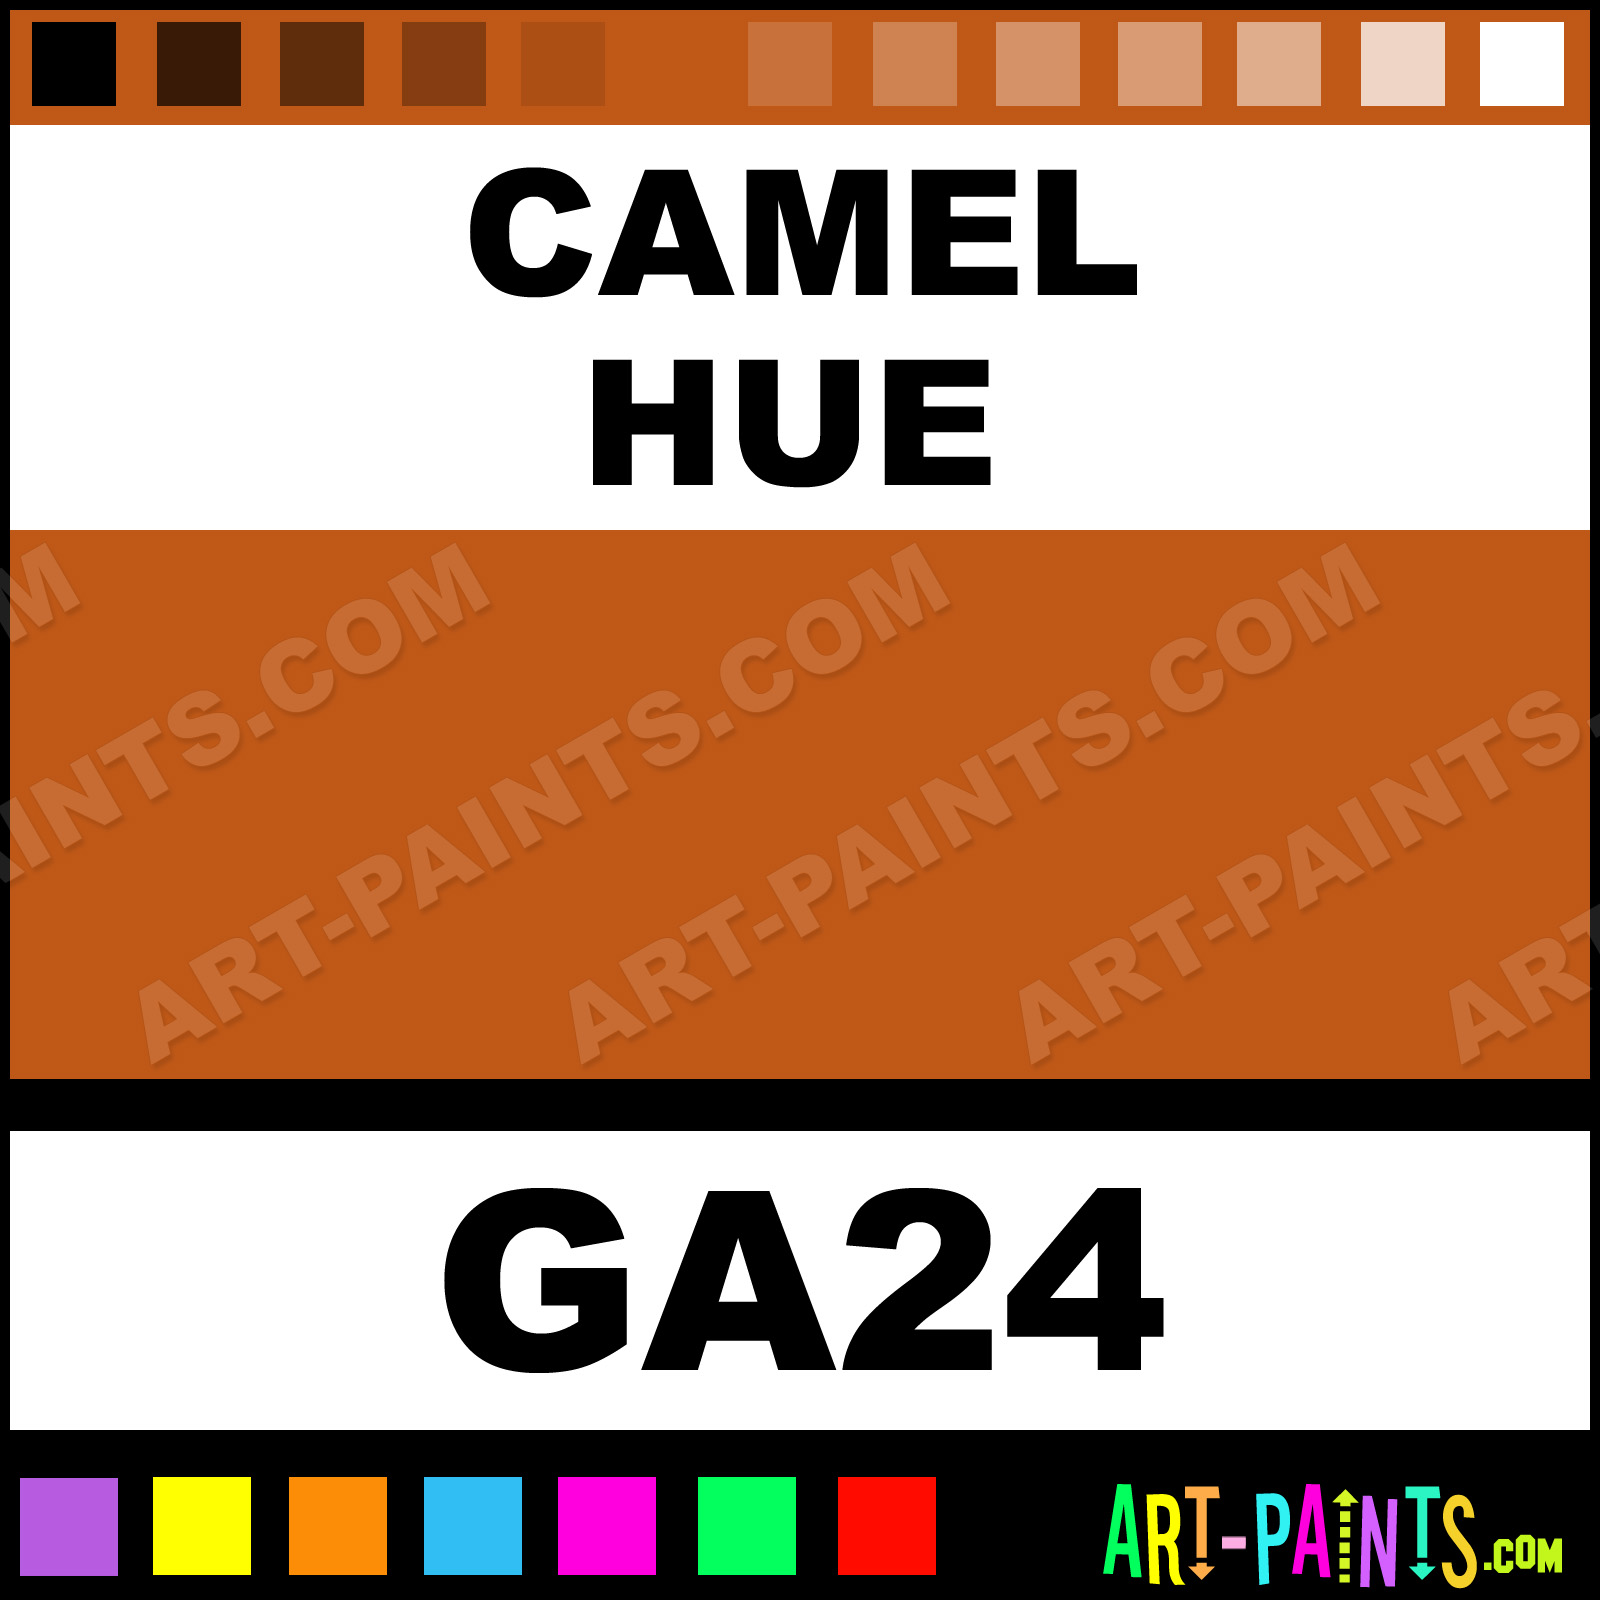 photograph regarding Camel Coupons Printable called Camel discount coupons cellphone range : discount codes could possibly 2018